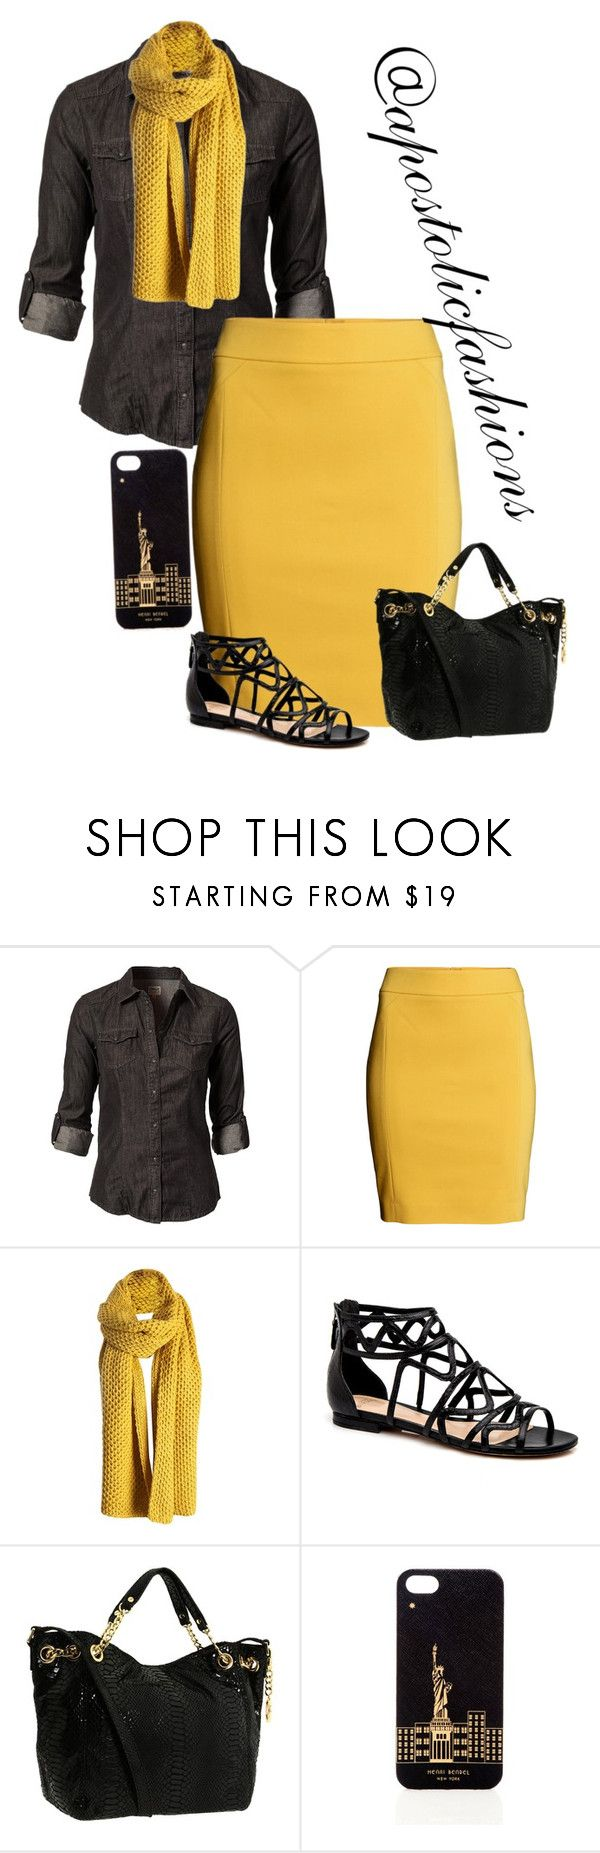 """""""Apostolic Fashions #1296"""" by apostolicfashions ❤ liked on Polyvore featuring ONLY, H&M, MICHAEL Michael Kors and Henri Bendel"""